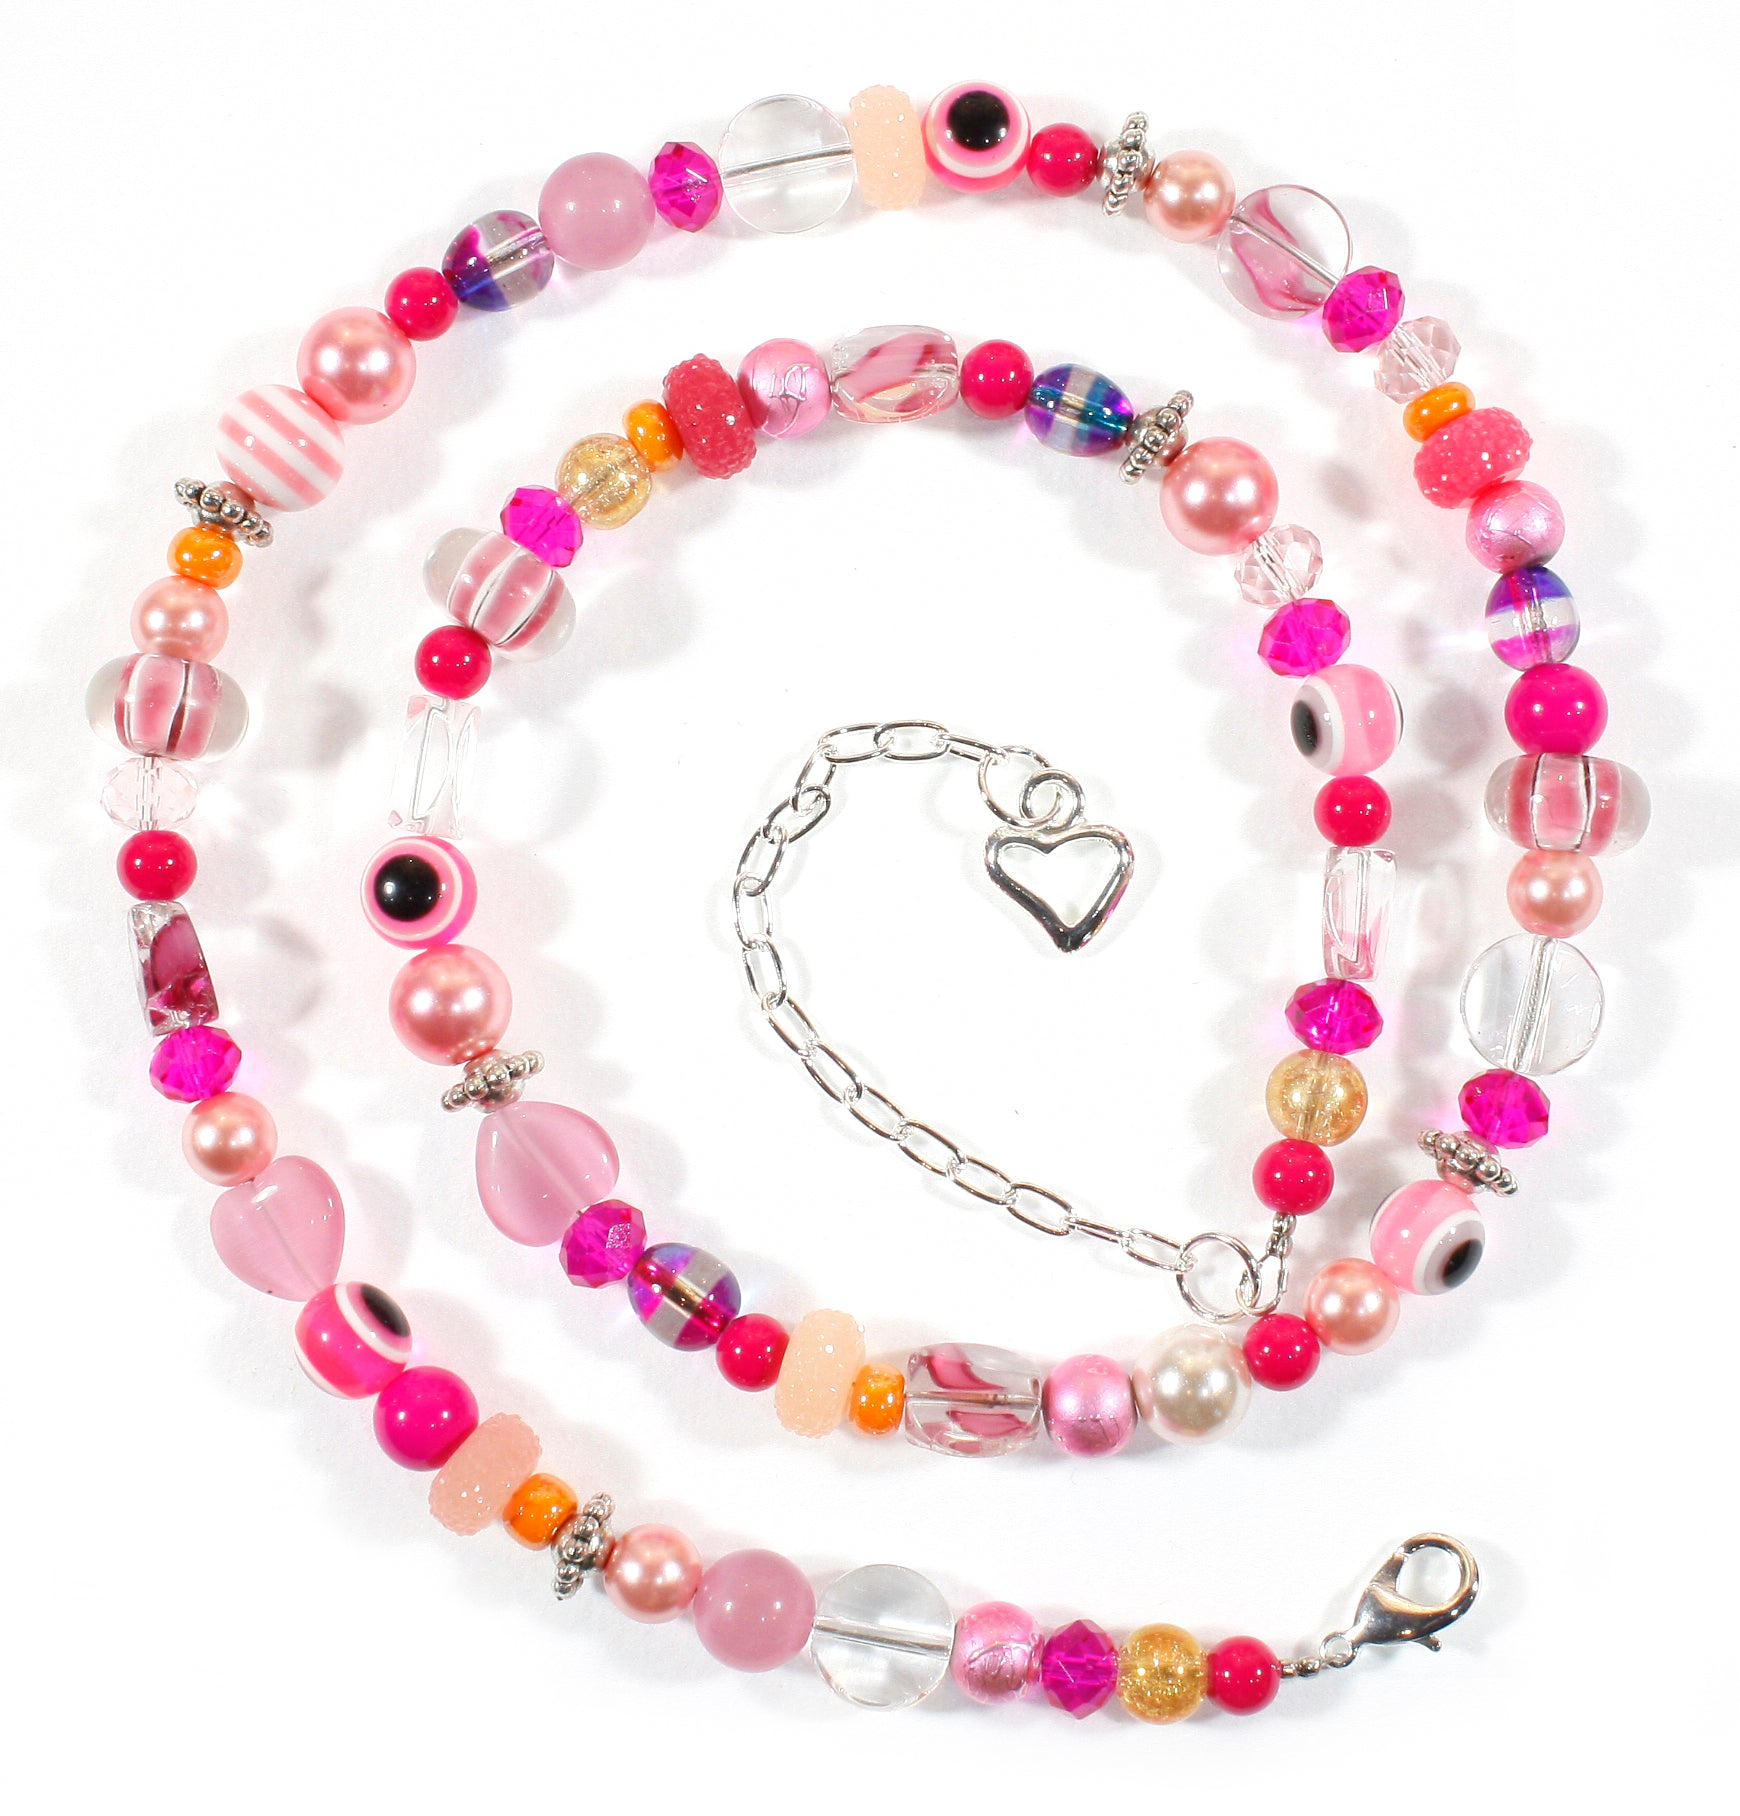 """All About Pink"" Fabulous Glass Bead Necklace, 25 Inches"